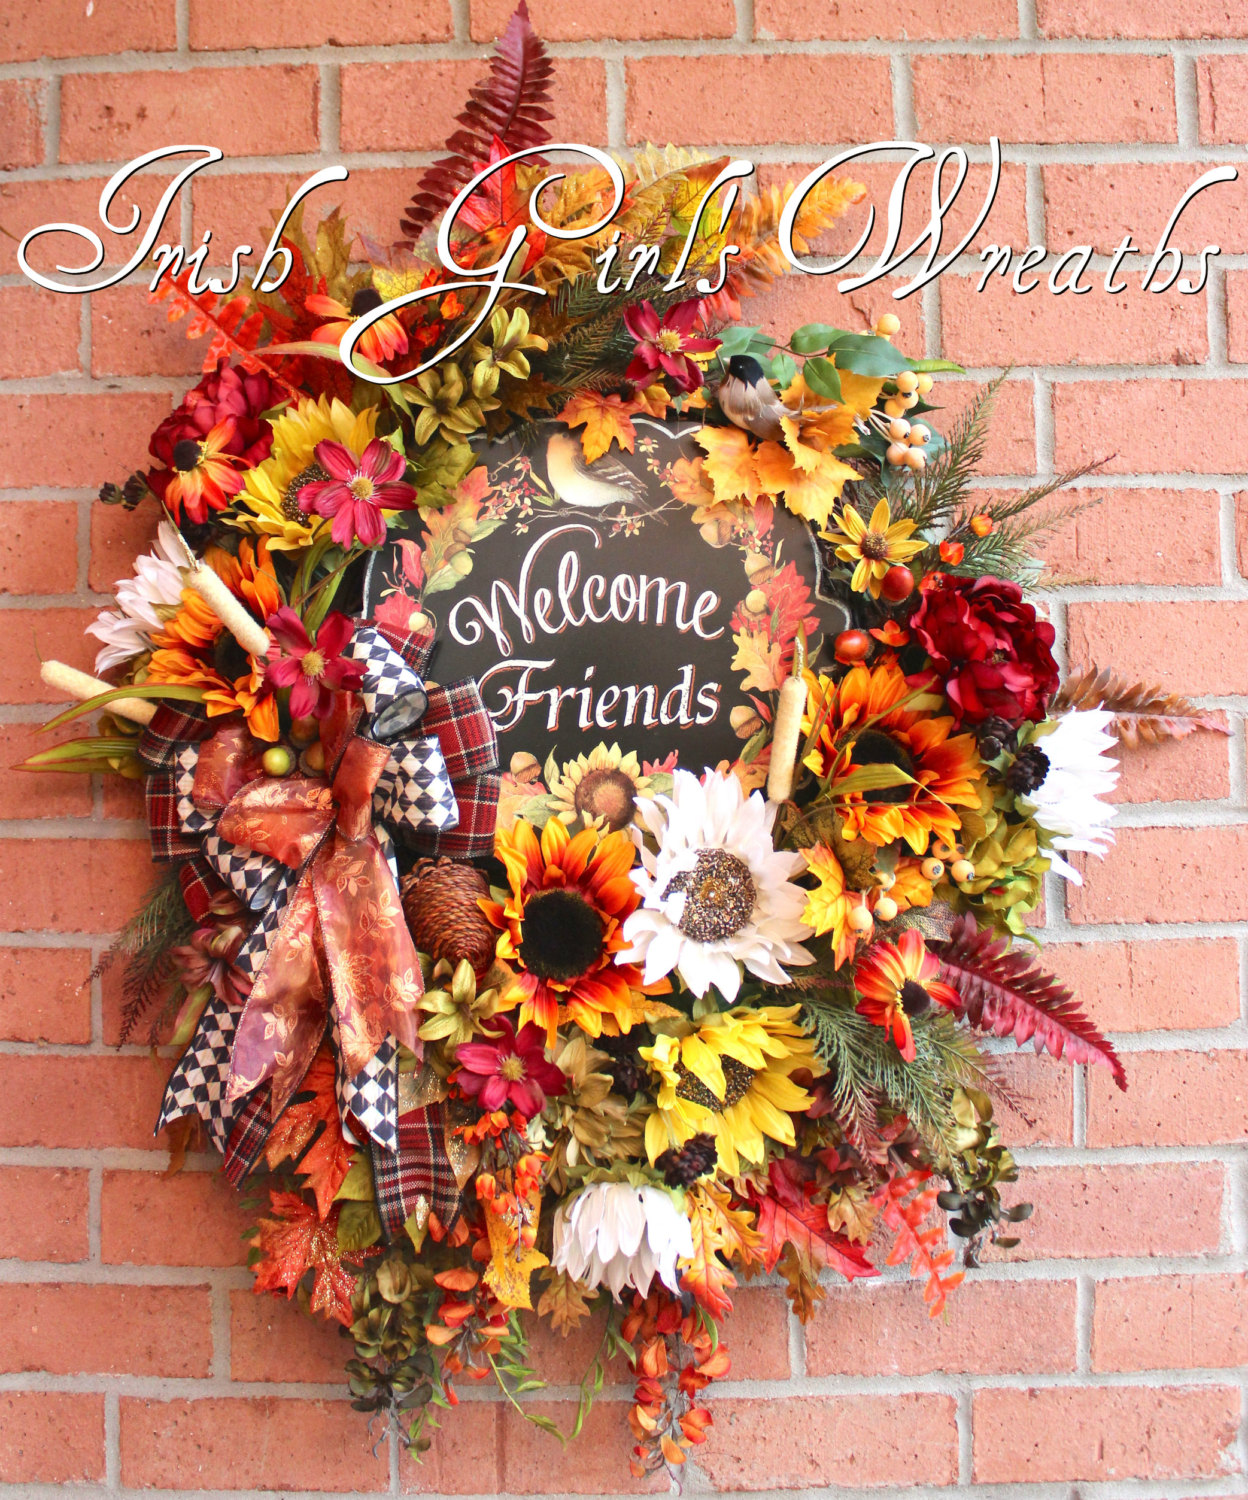 HUGE Welcome Friends Deluxe Fall Sunflower Wreath, XXL Autumn Floral Wreath